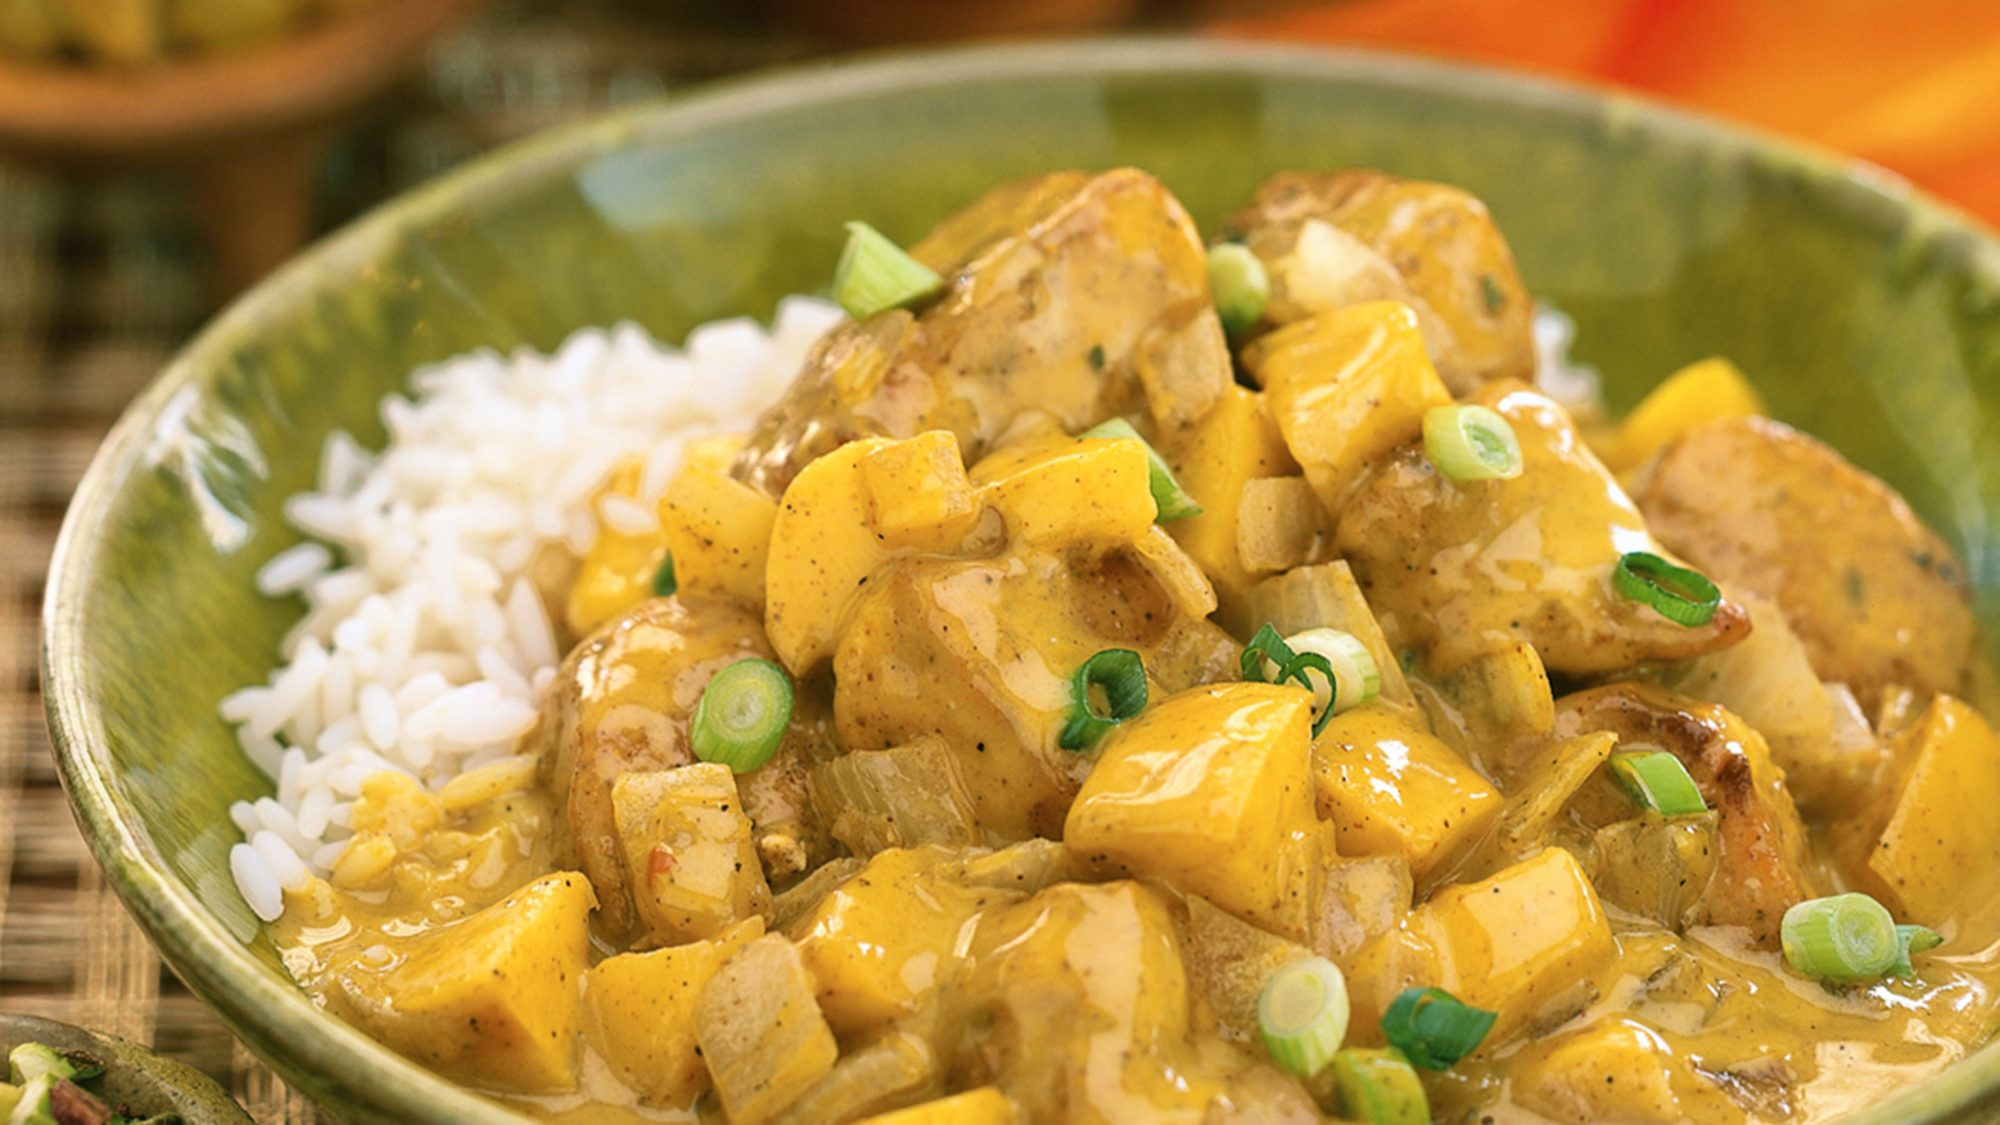 McCormick Gourmet Red Curried Chicken